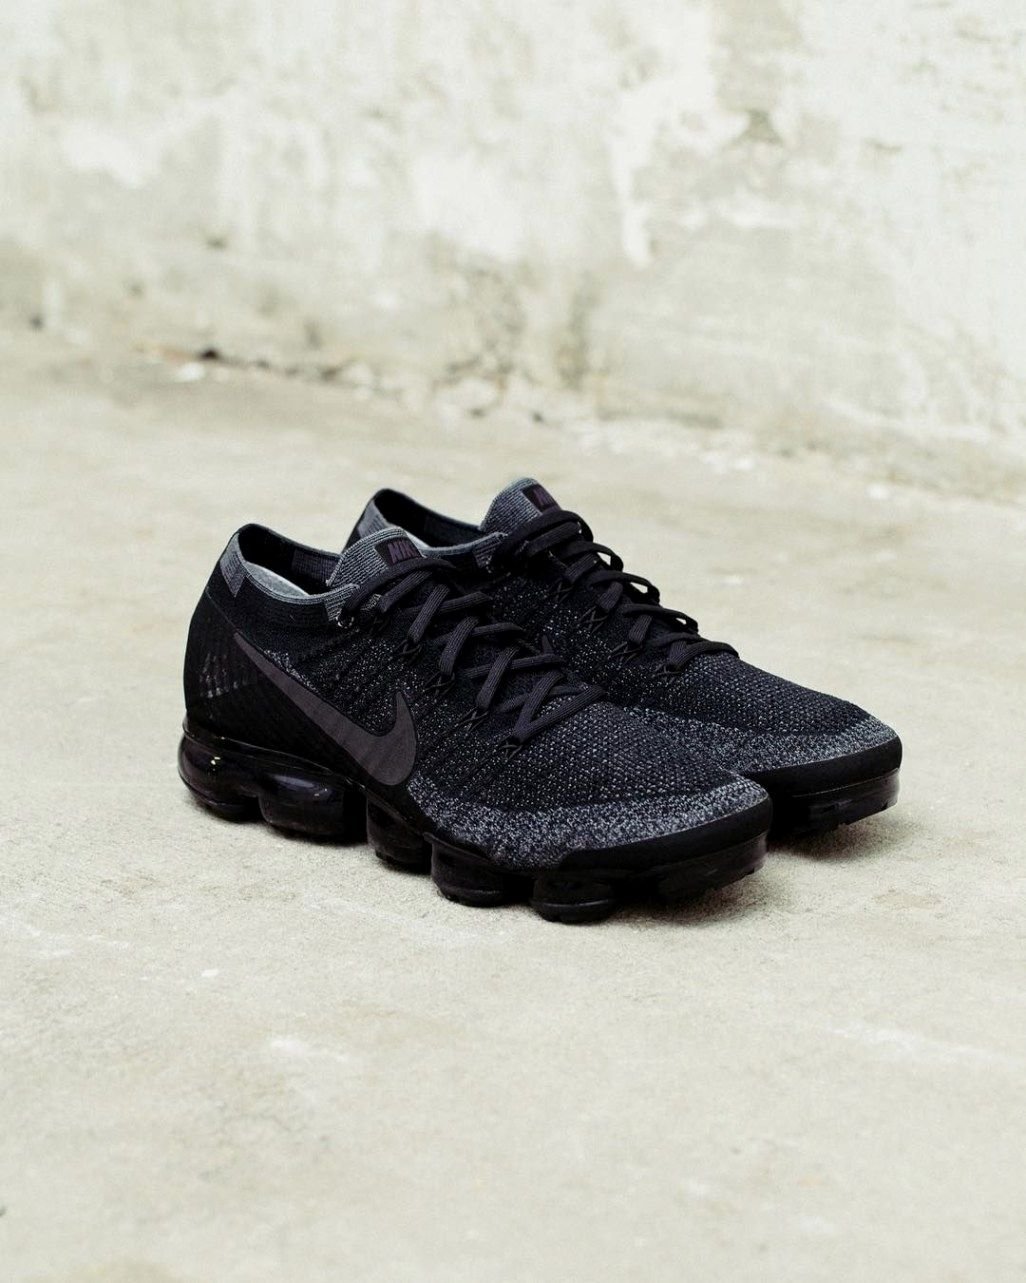 Men's Sneakers Ideas. Are you looking for more info on